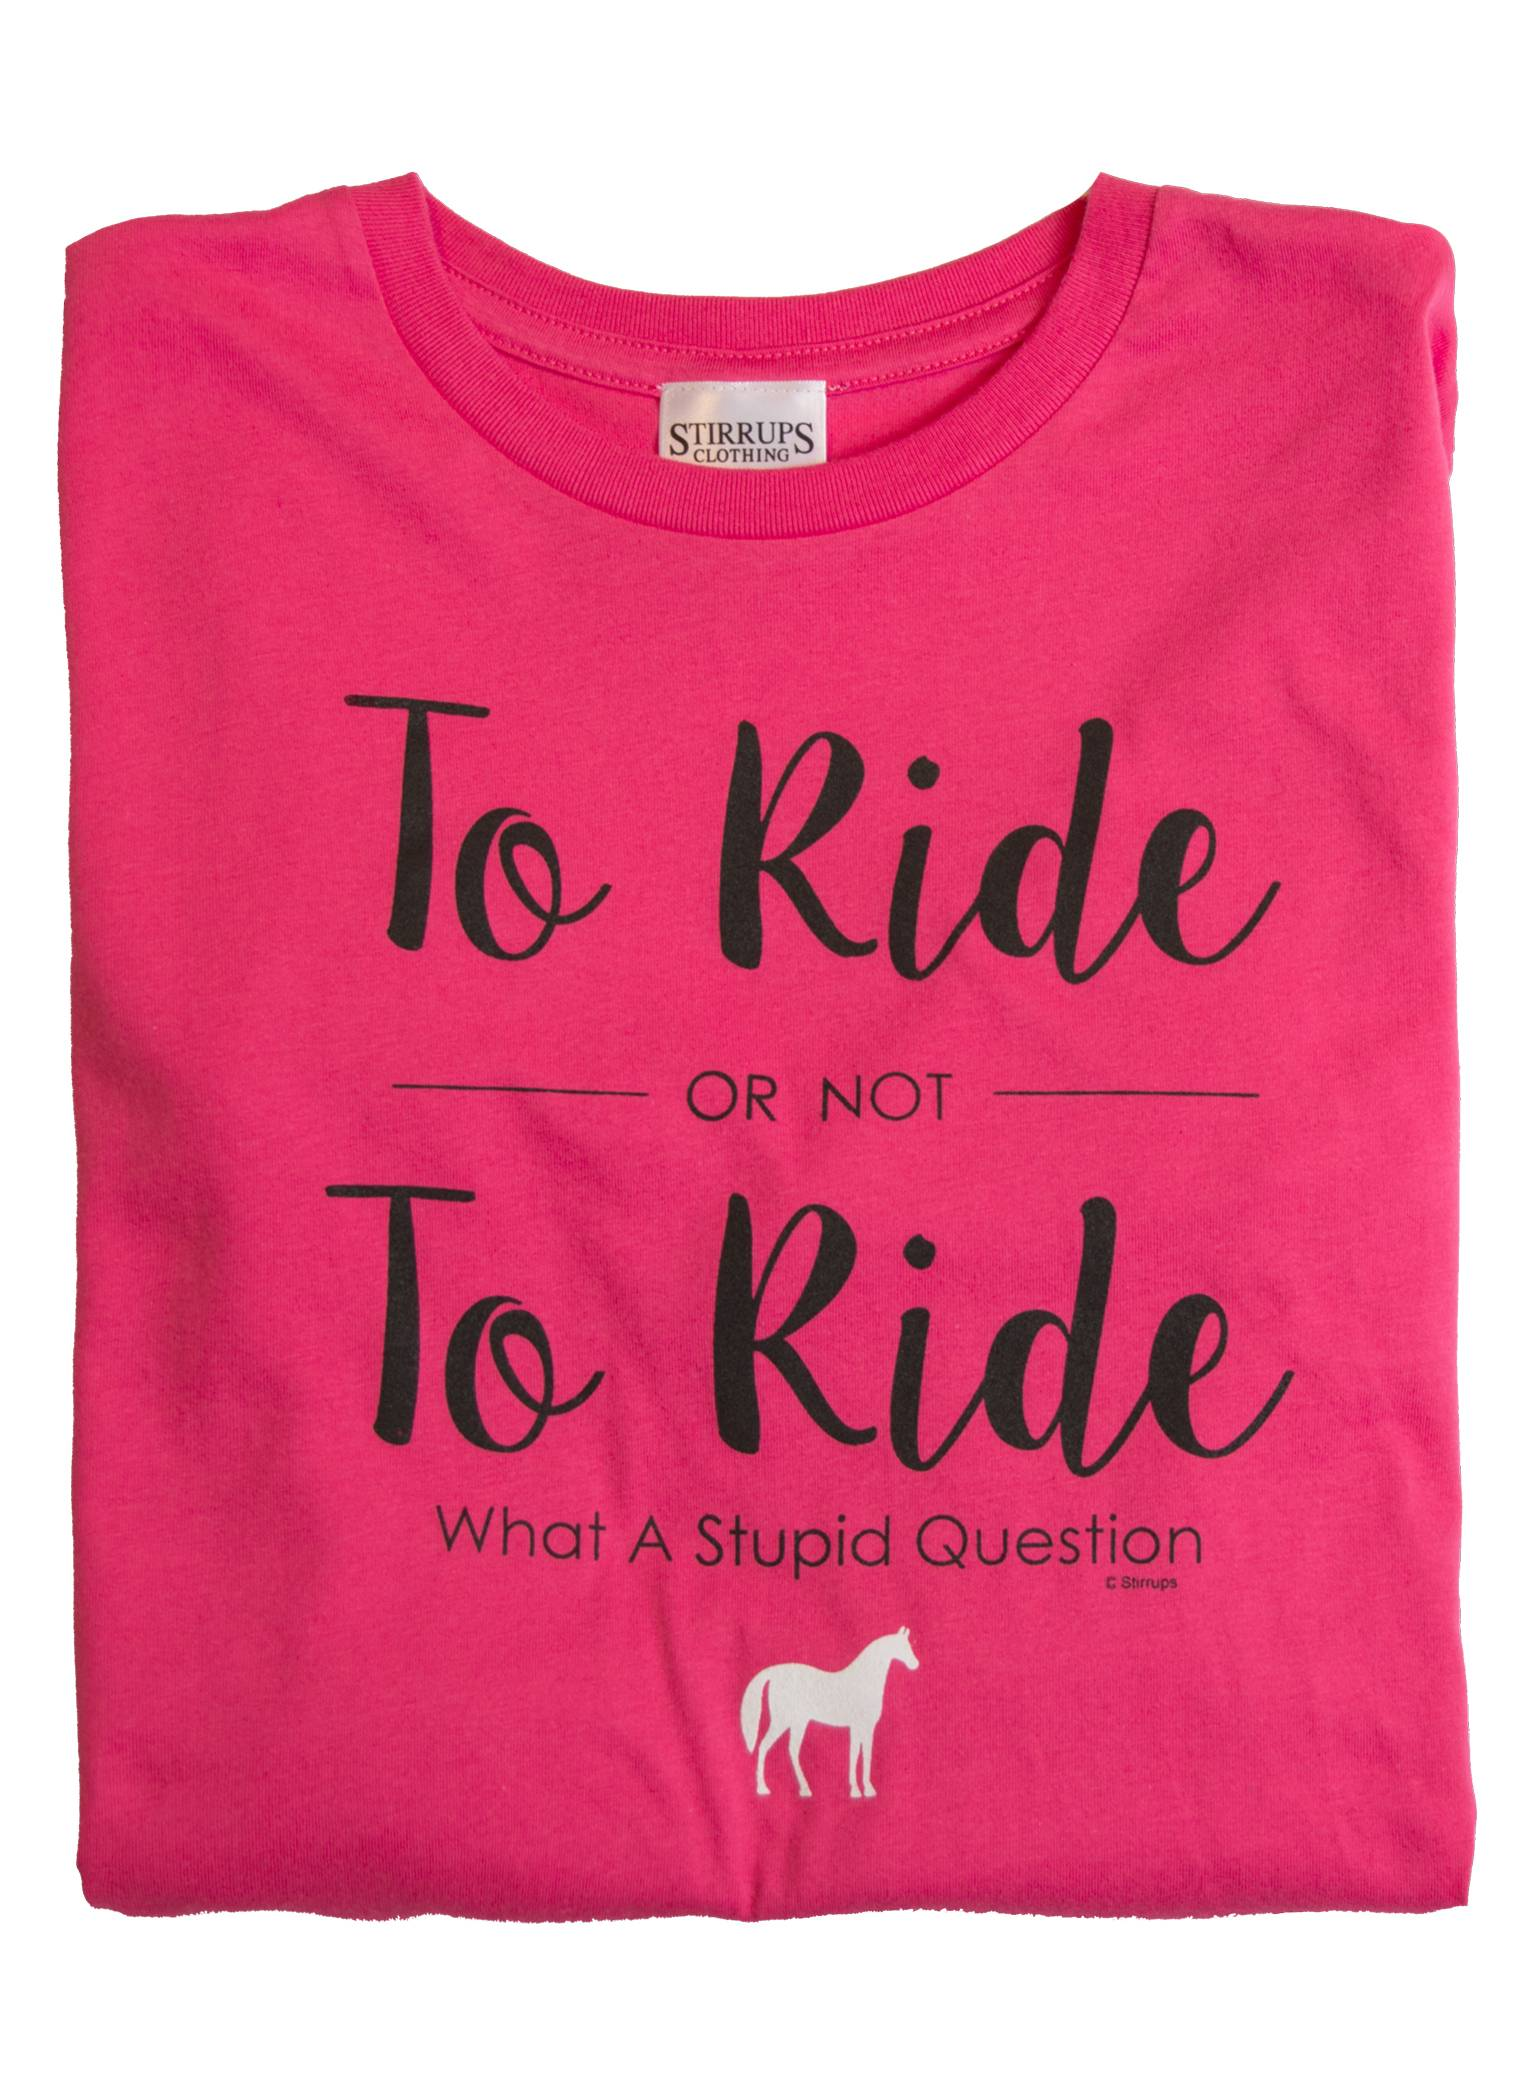 Stirrups To Ride Or Not To Ride Long Sleeve Jersey Tee - Kids